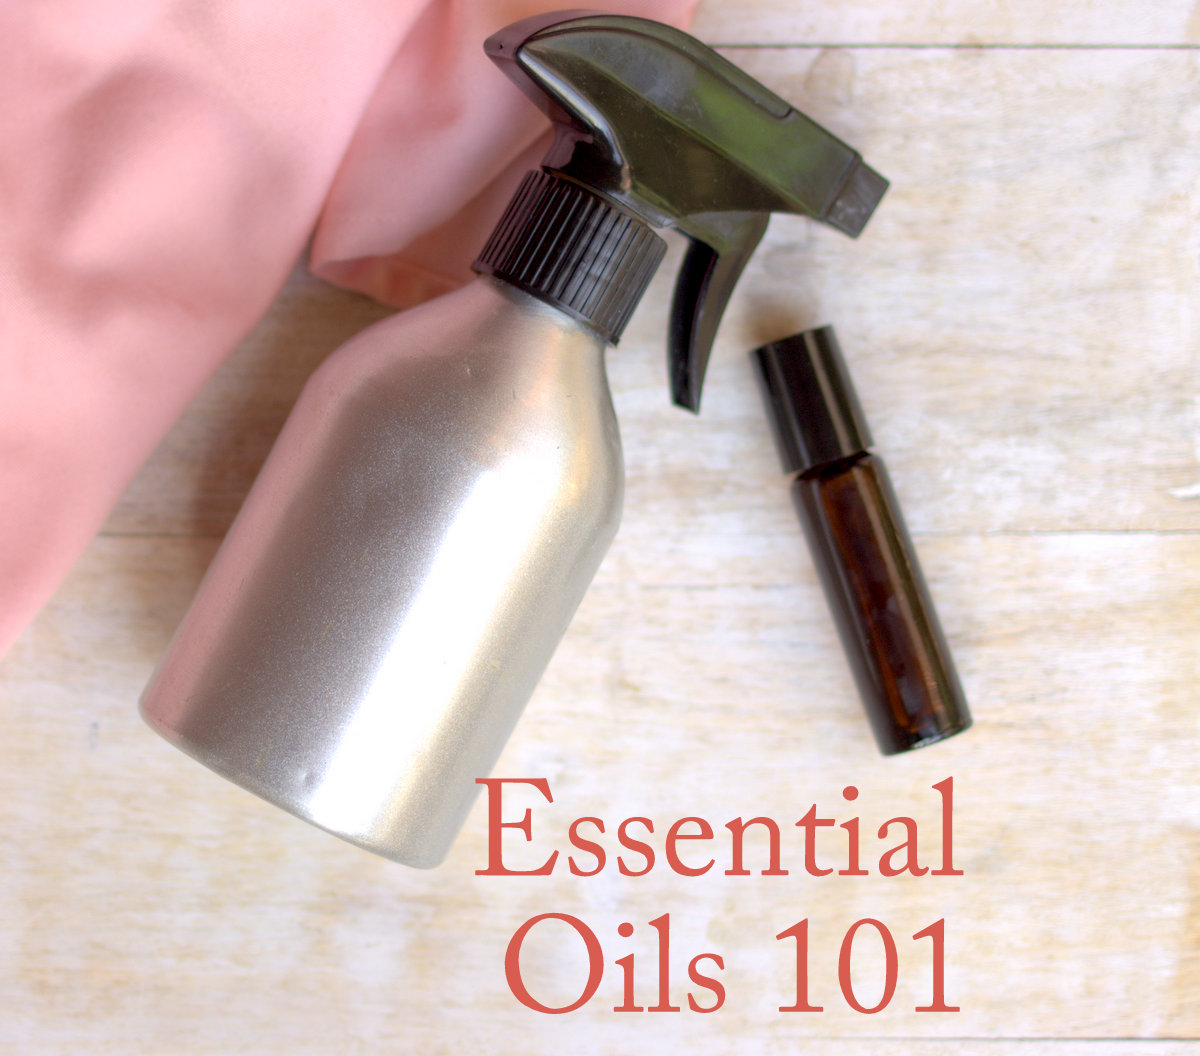 Essential Oils Webinar